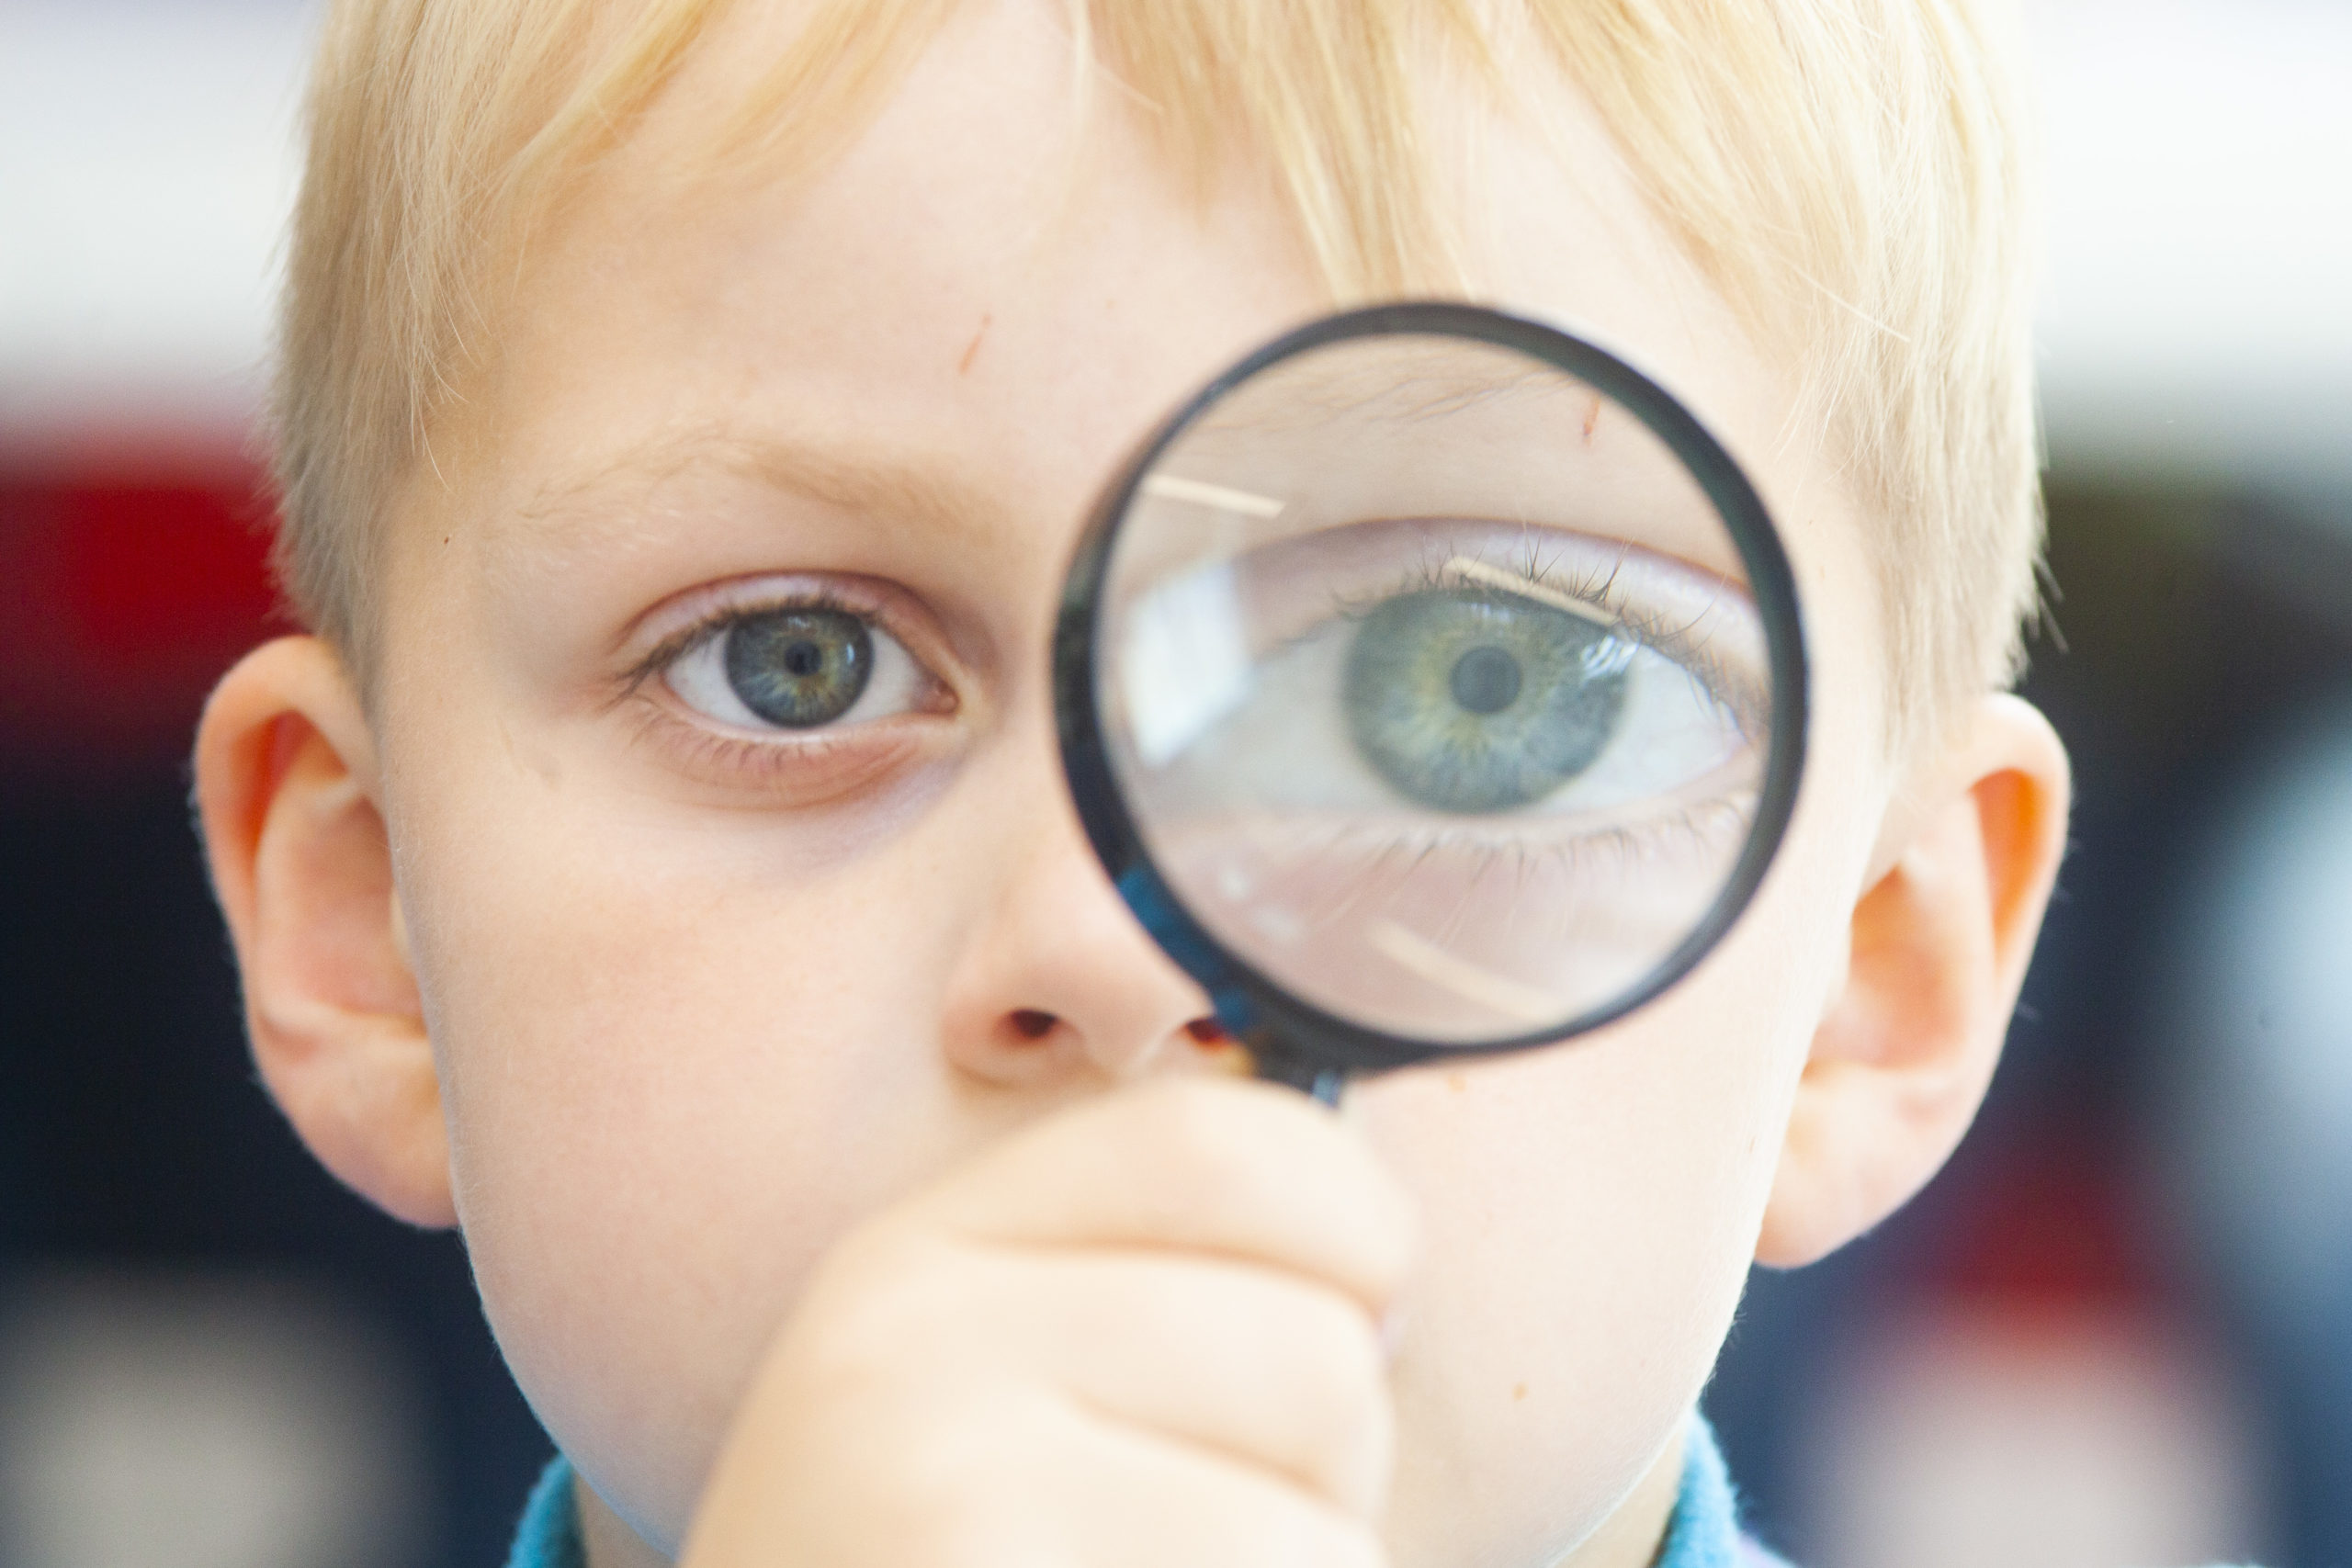 Photograph of young child looking through magnifying glass.